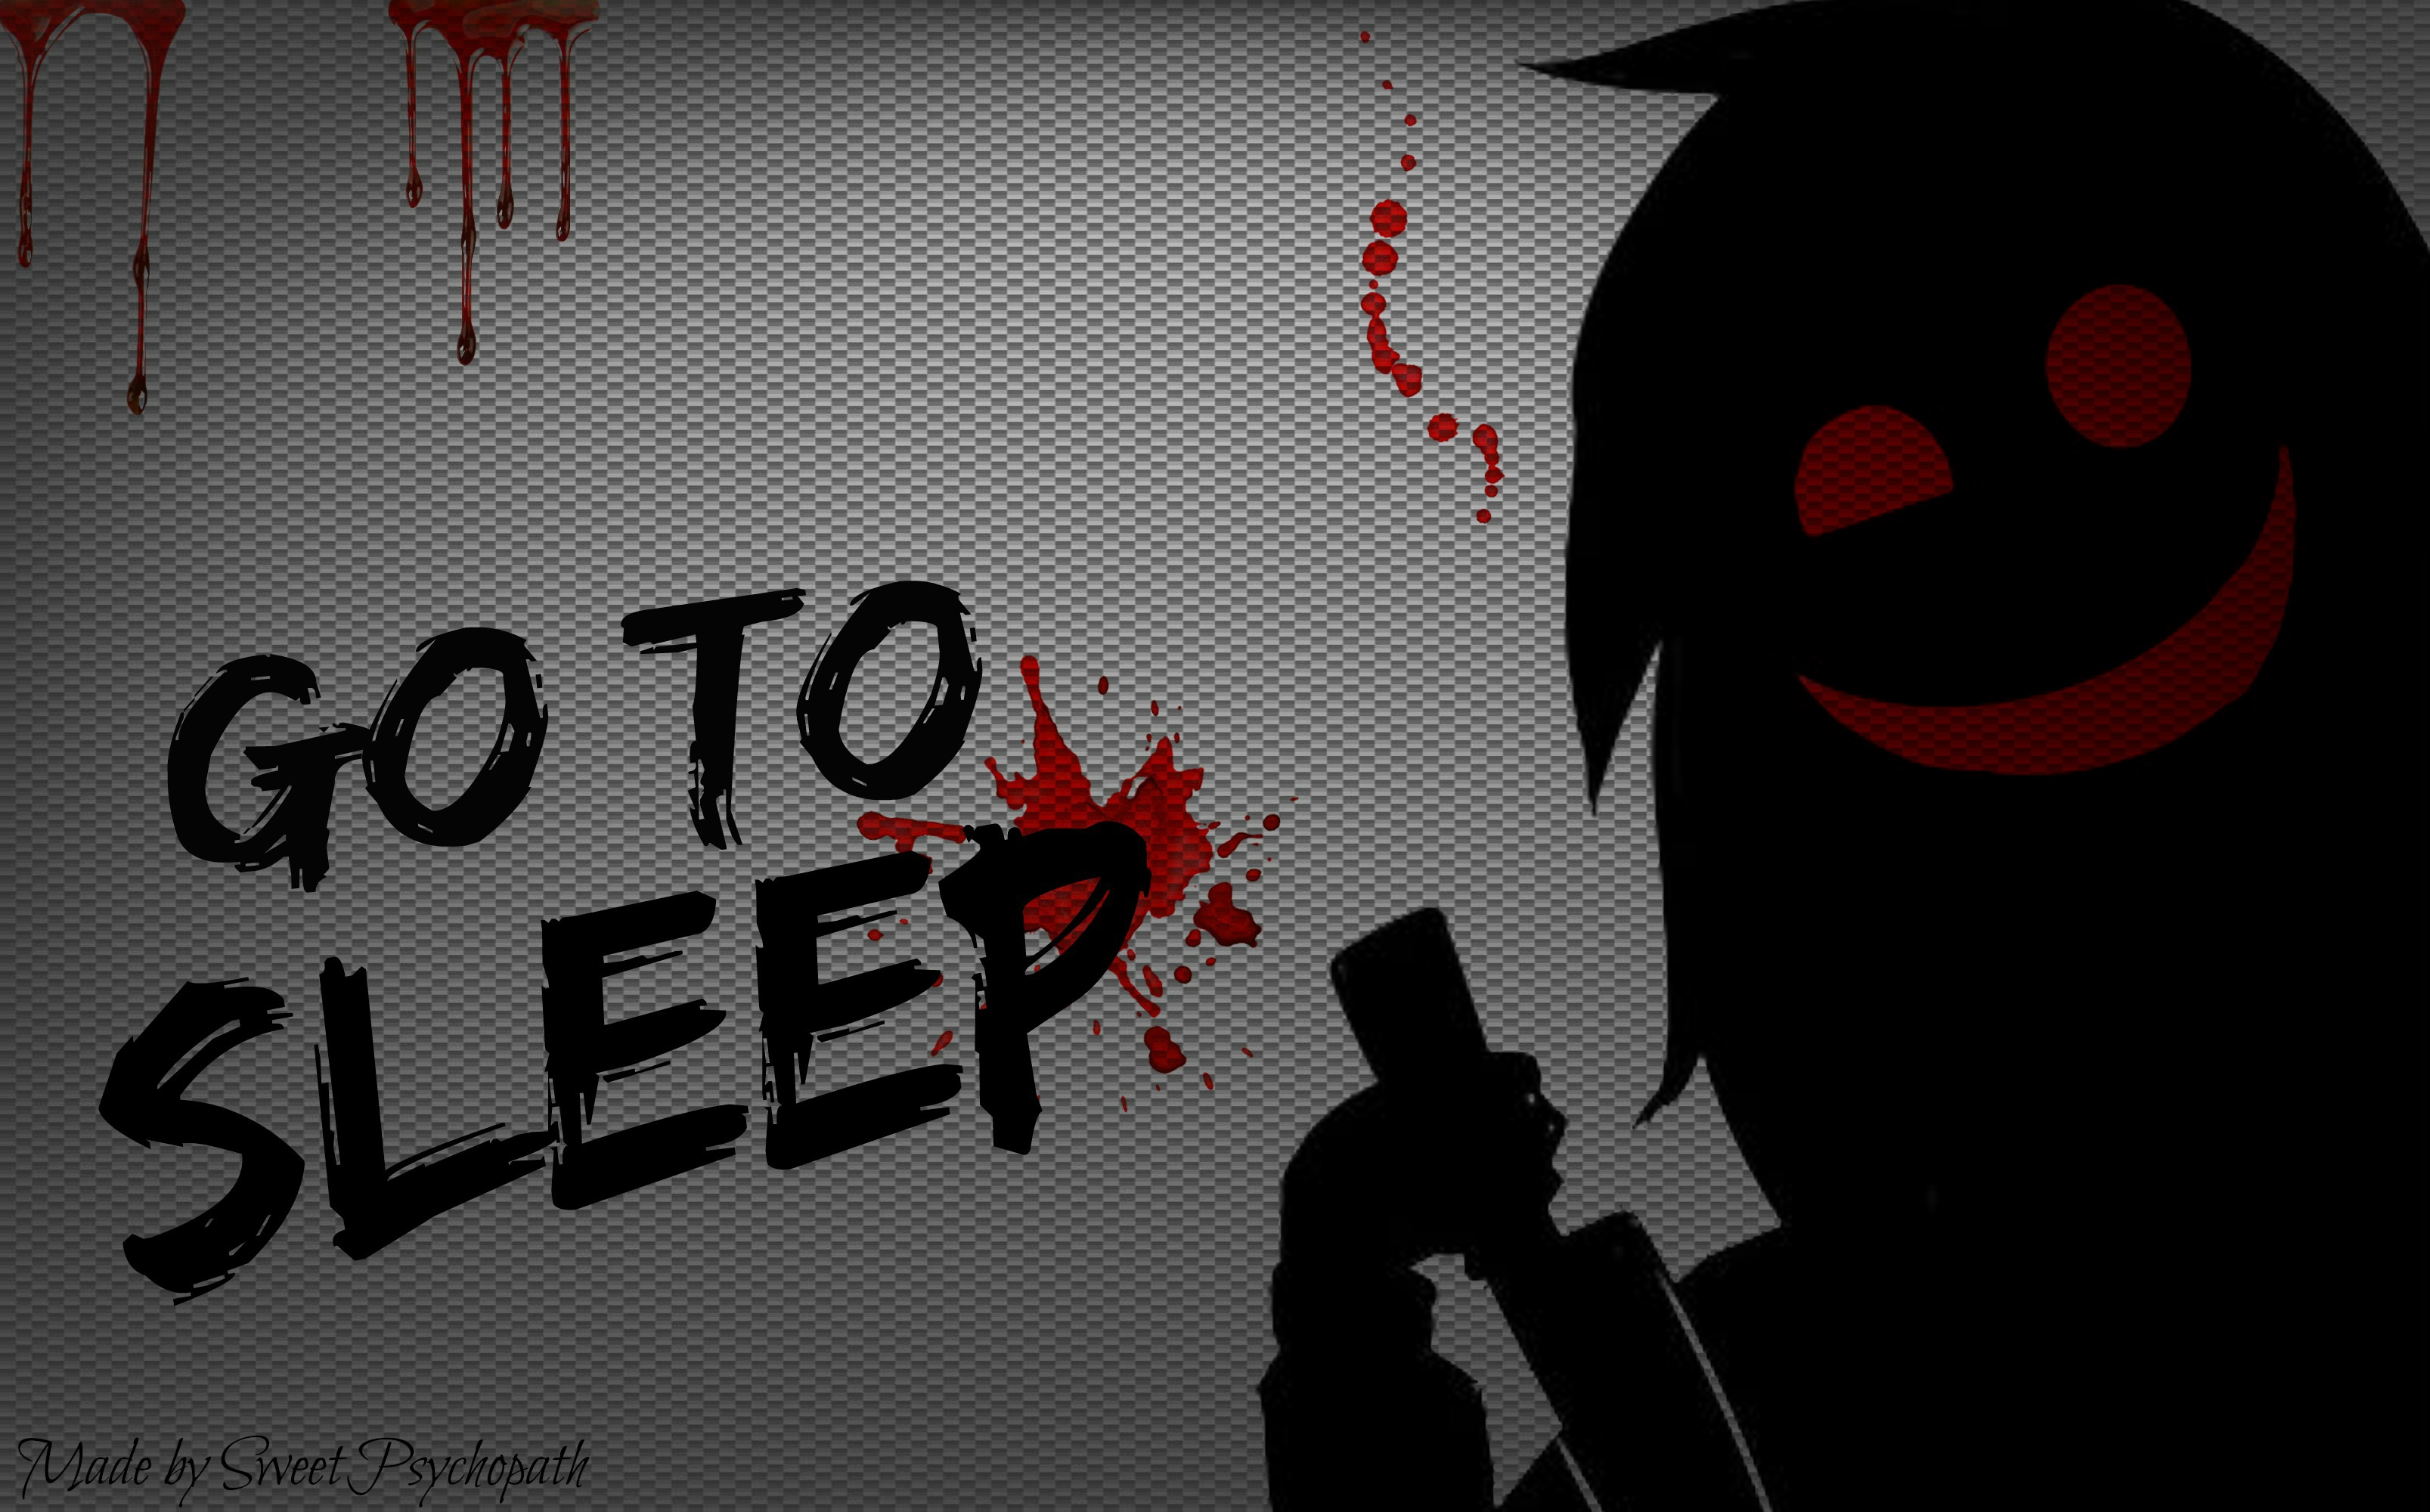 Jeff The Killer: Go To Sleep (Wallpaper) by SweetPsychopath on DeviantArt